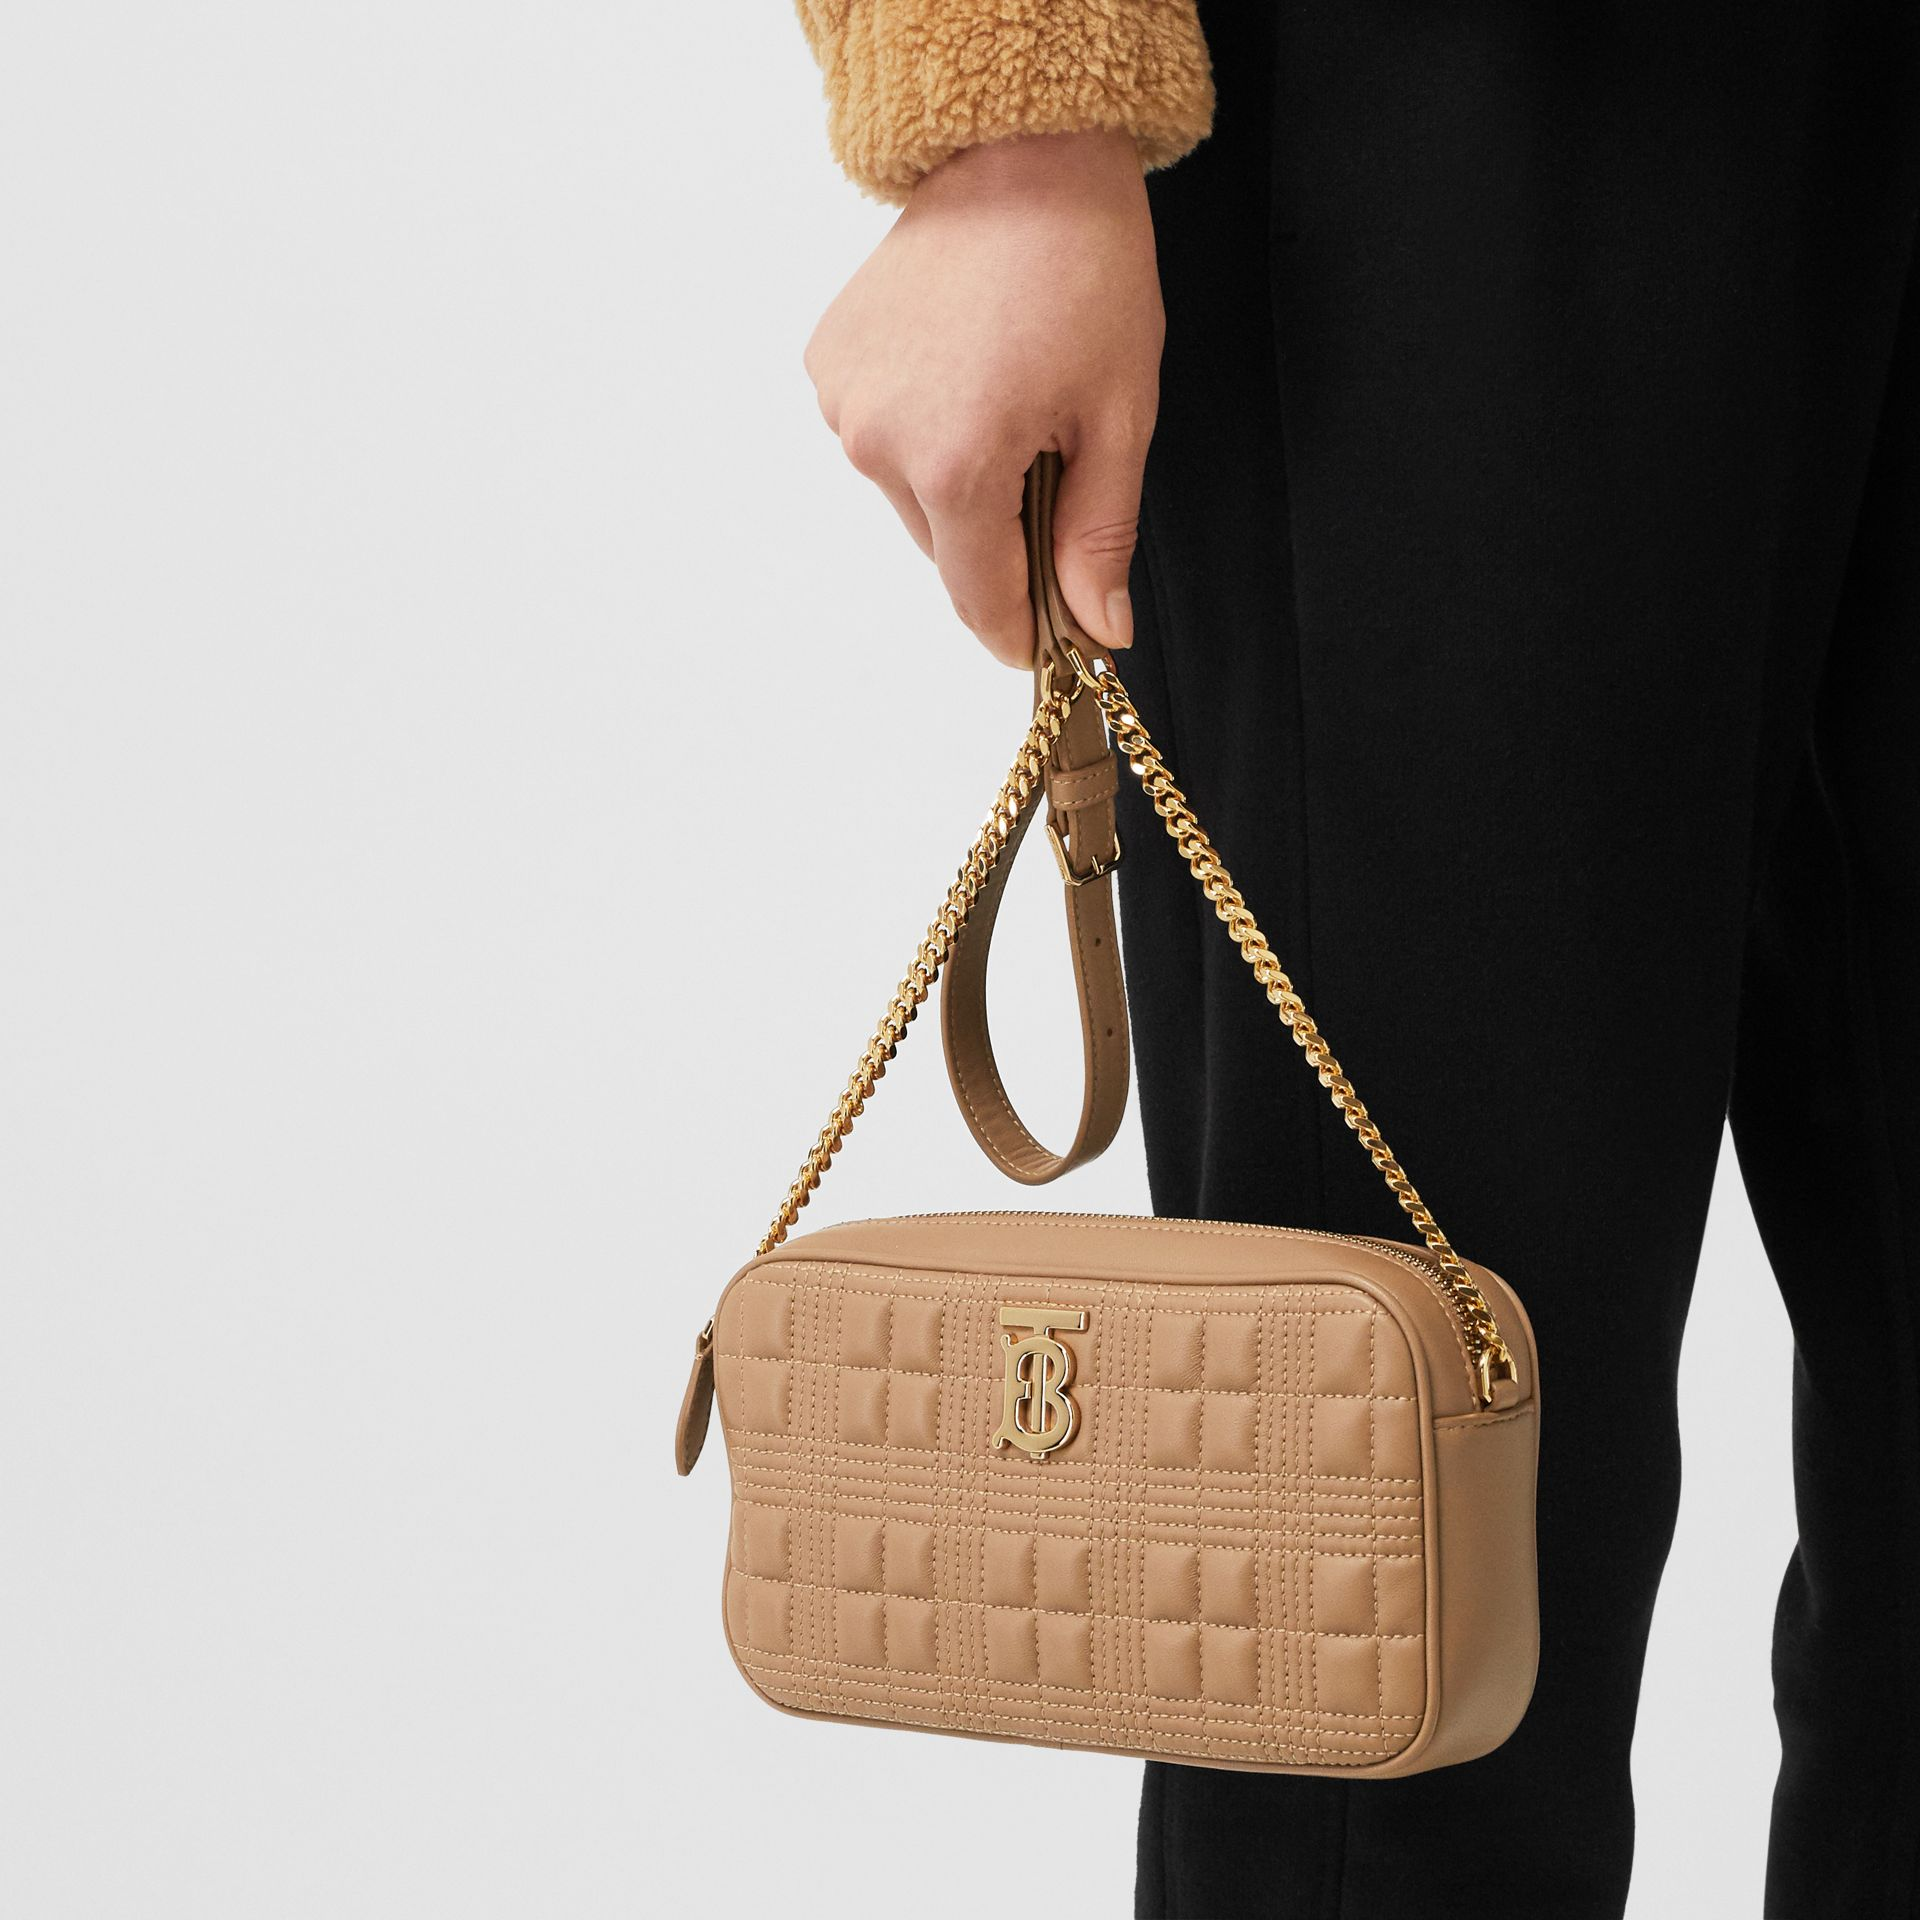 Quilted Check Lambskin Camera Bag in Camel - Women | Burberry - gallery image 8